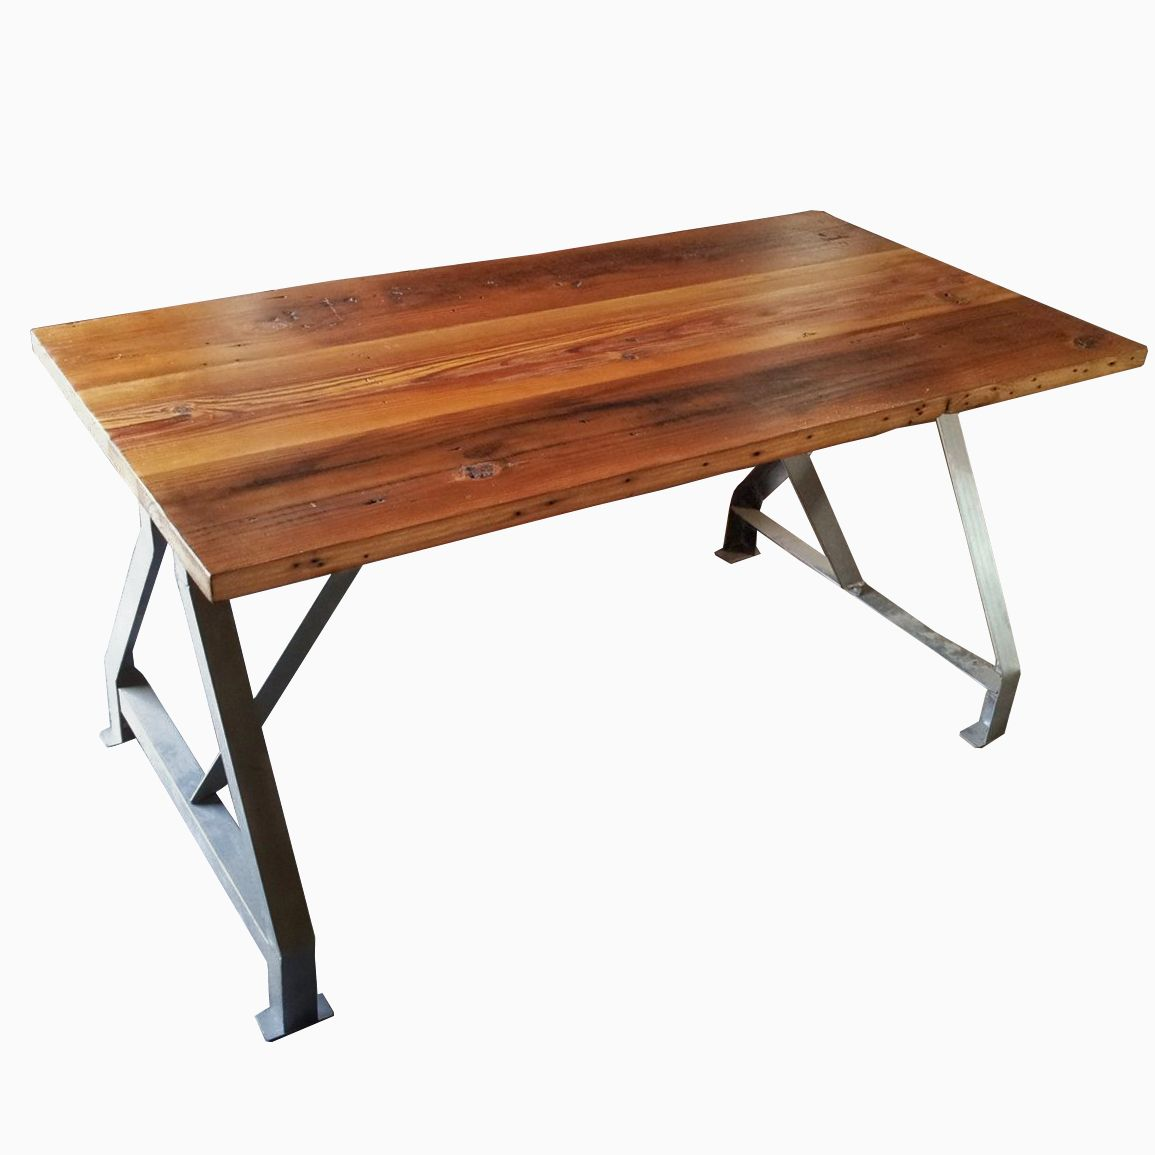 Buy A Hand Made Factory Work Table With Industrial Metal Base And Made From Reclaimed Wood Plank